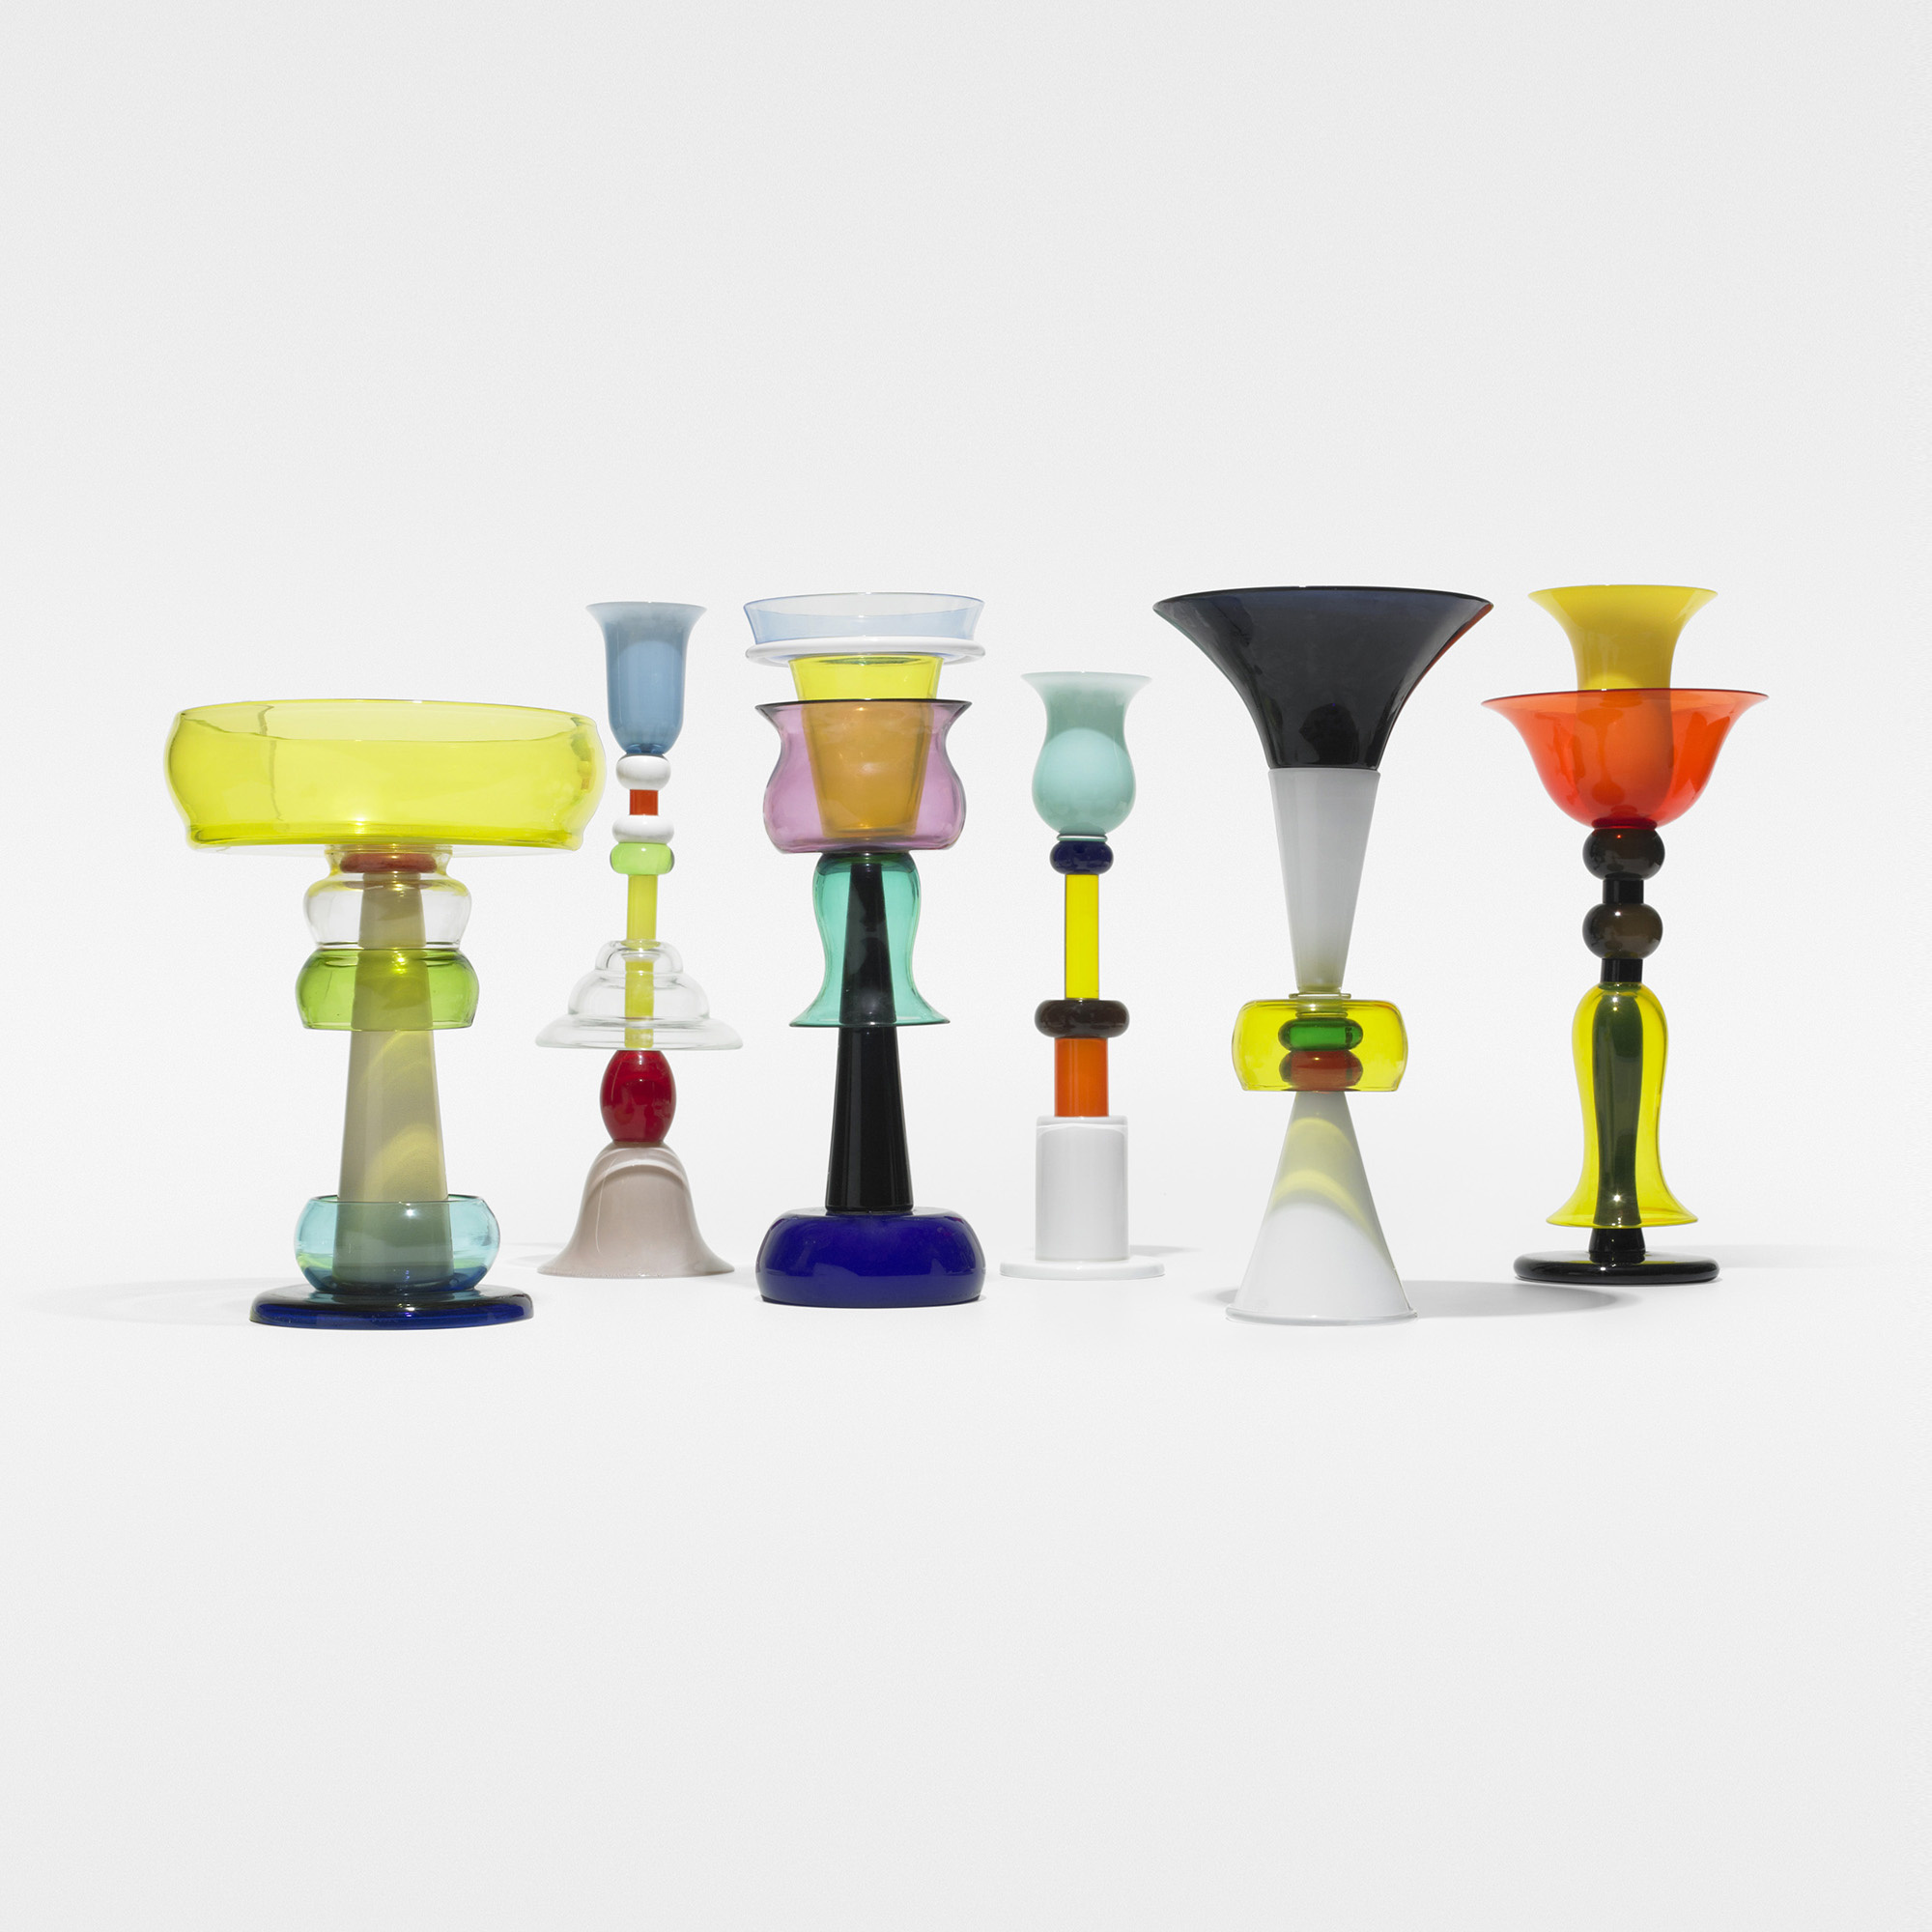 437 ettore sottsass collection of six vessels for Memphis sottsass